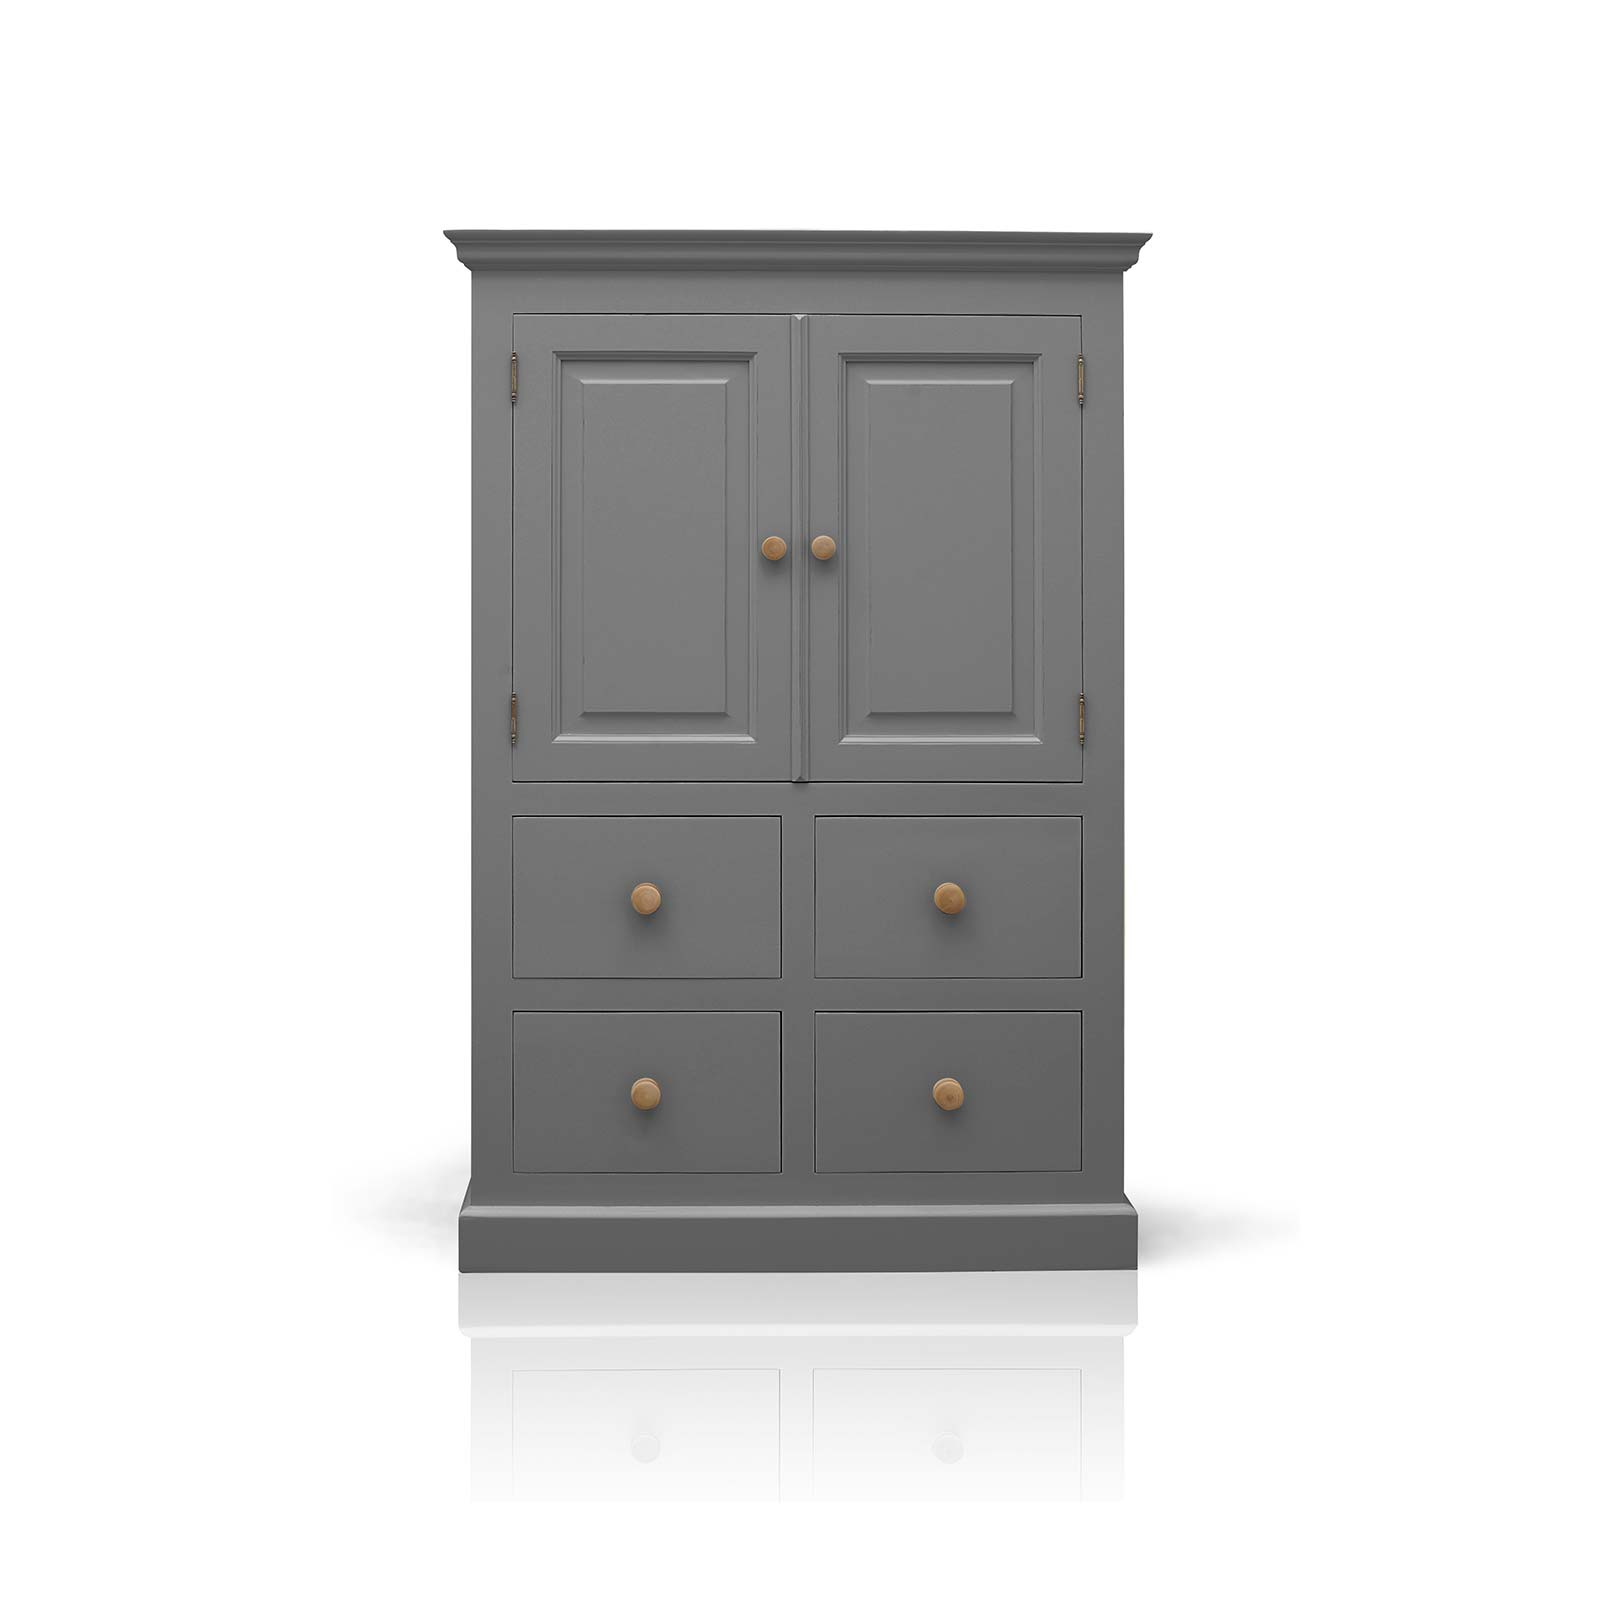 Beyond Home The Soho Painted Furniture Collection Small Linen Cupboard in Grey